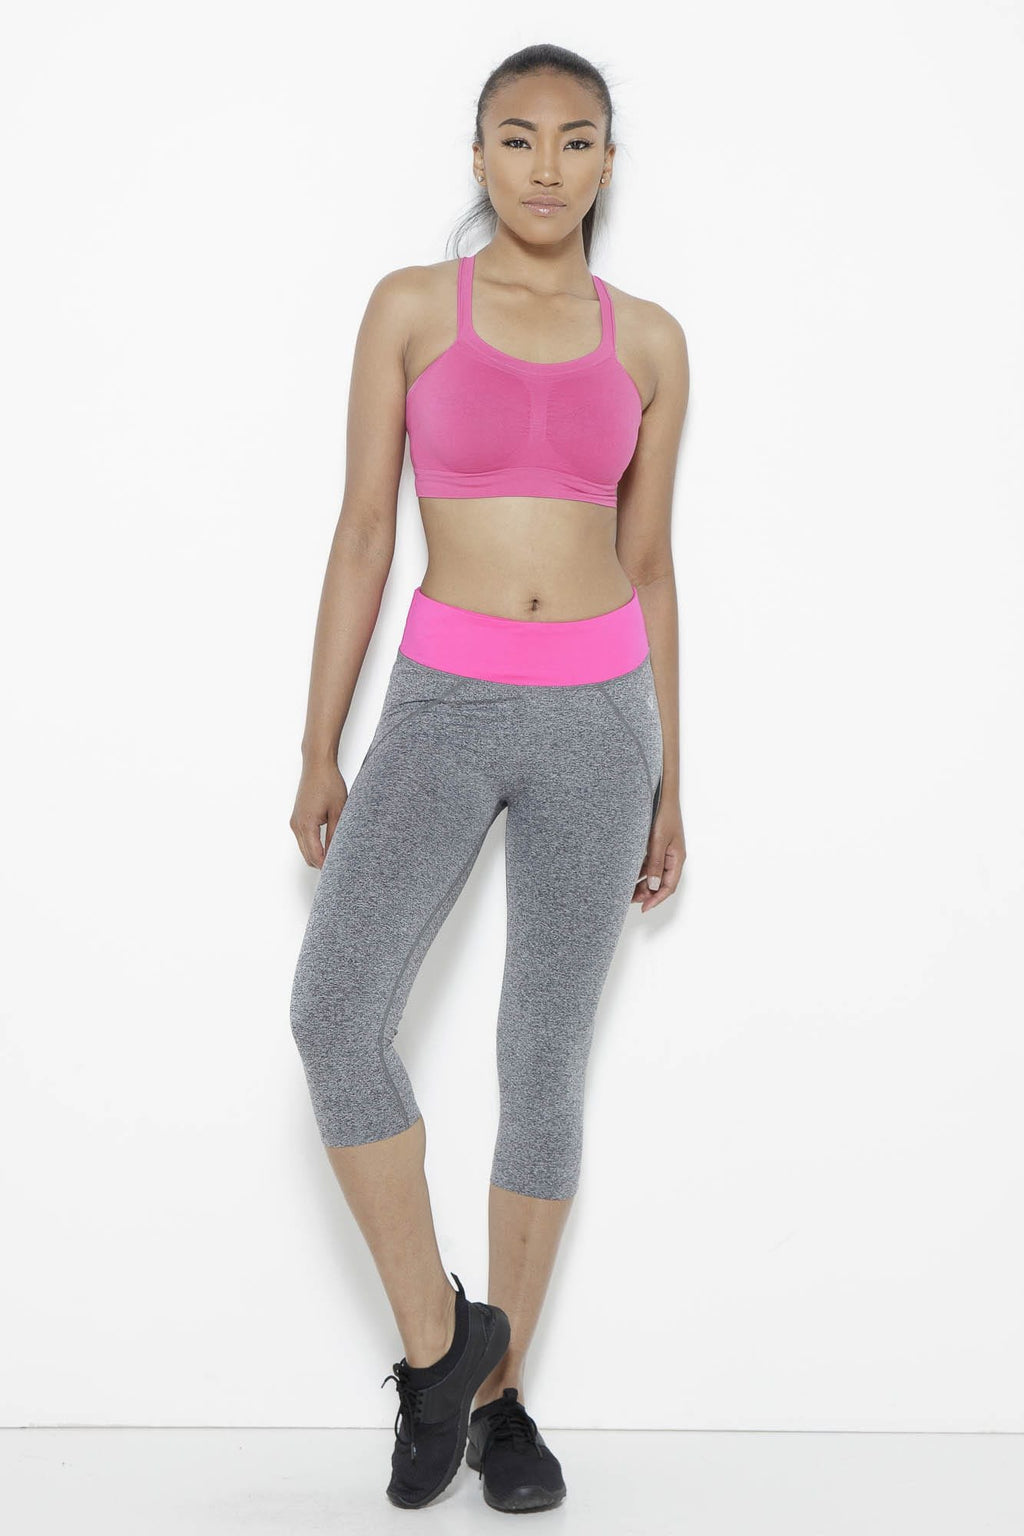 fair-shade - Shear Sighted Capris- Fuchsia/Grey - Clothing